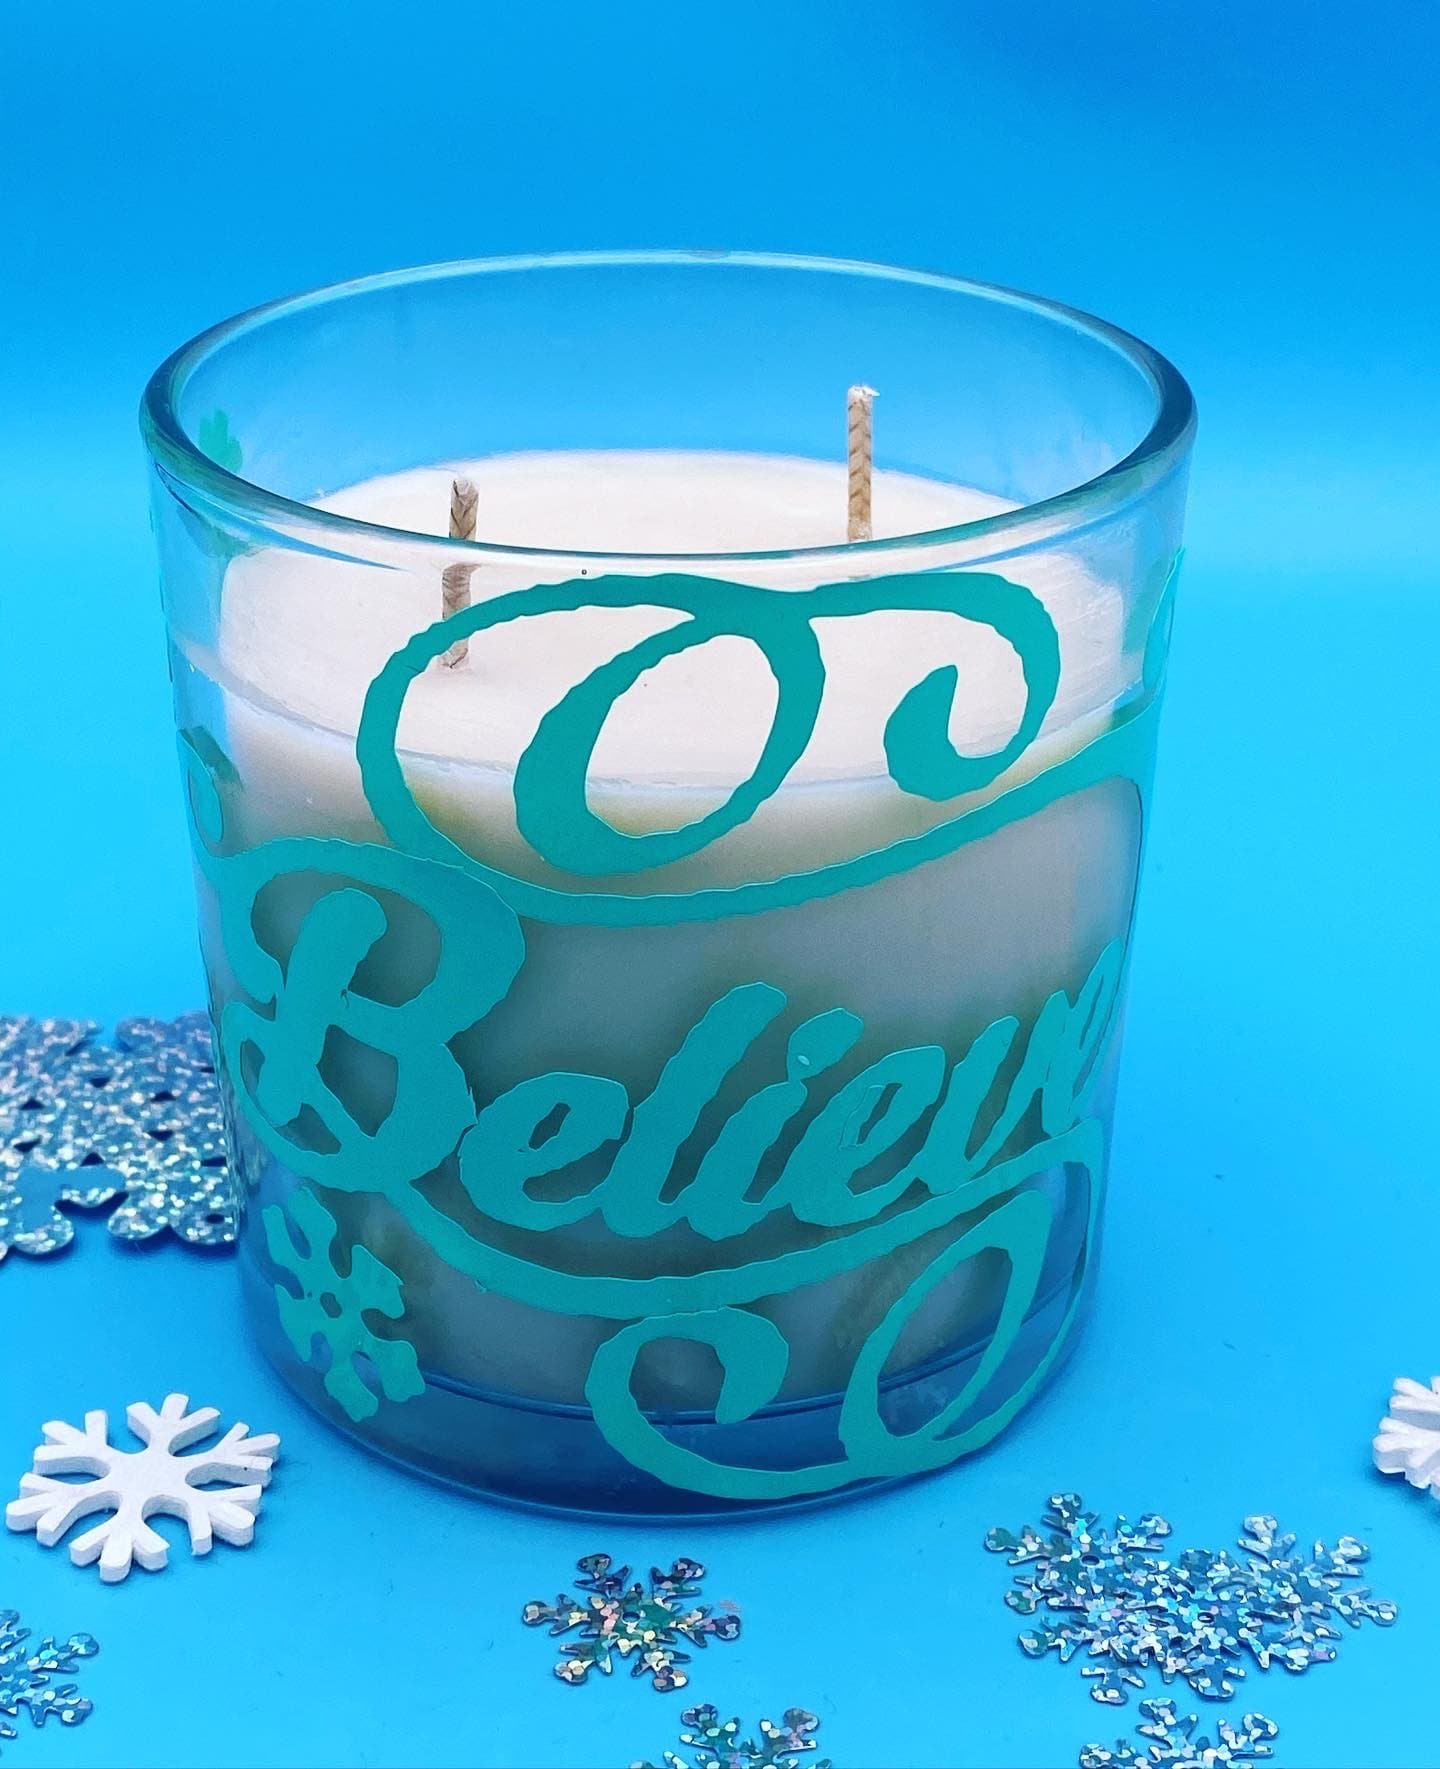 Extra large believe candle 2 wicks